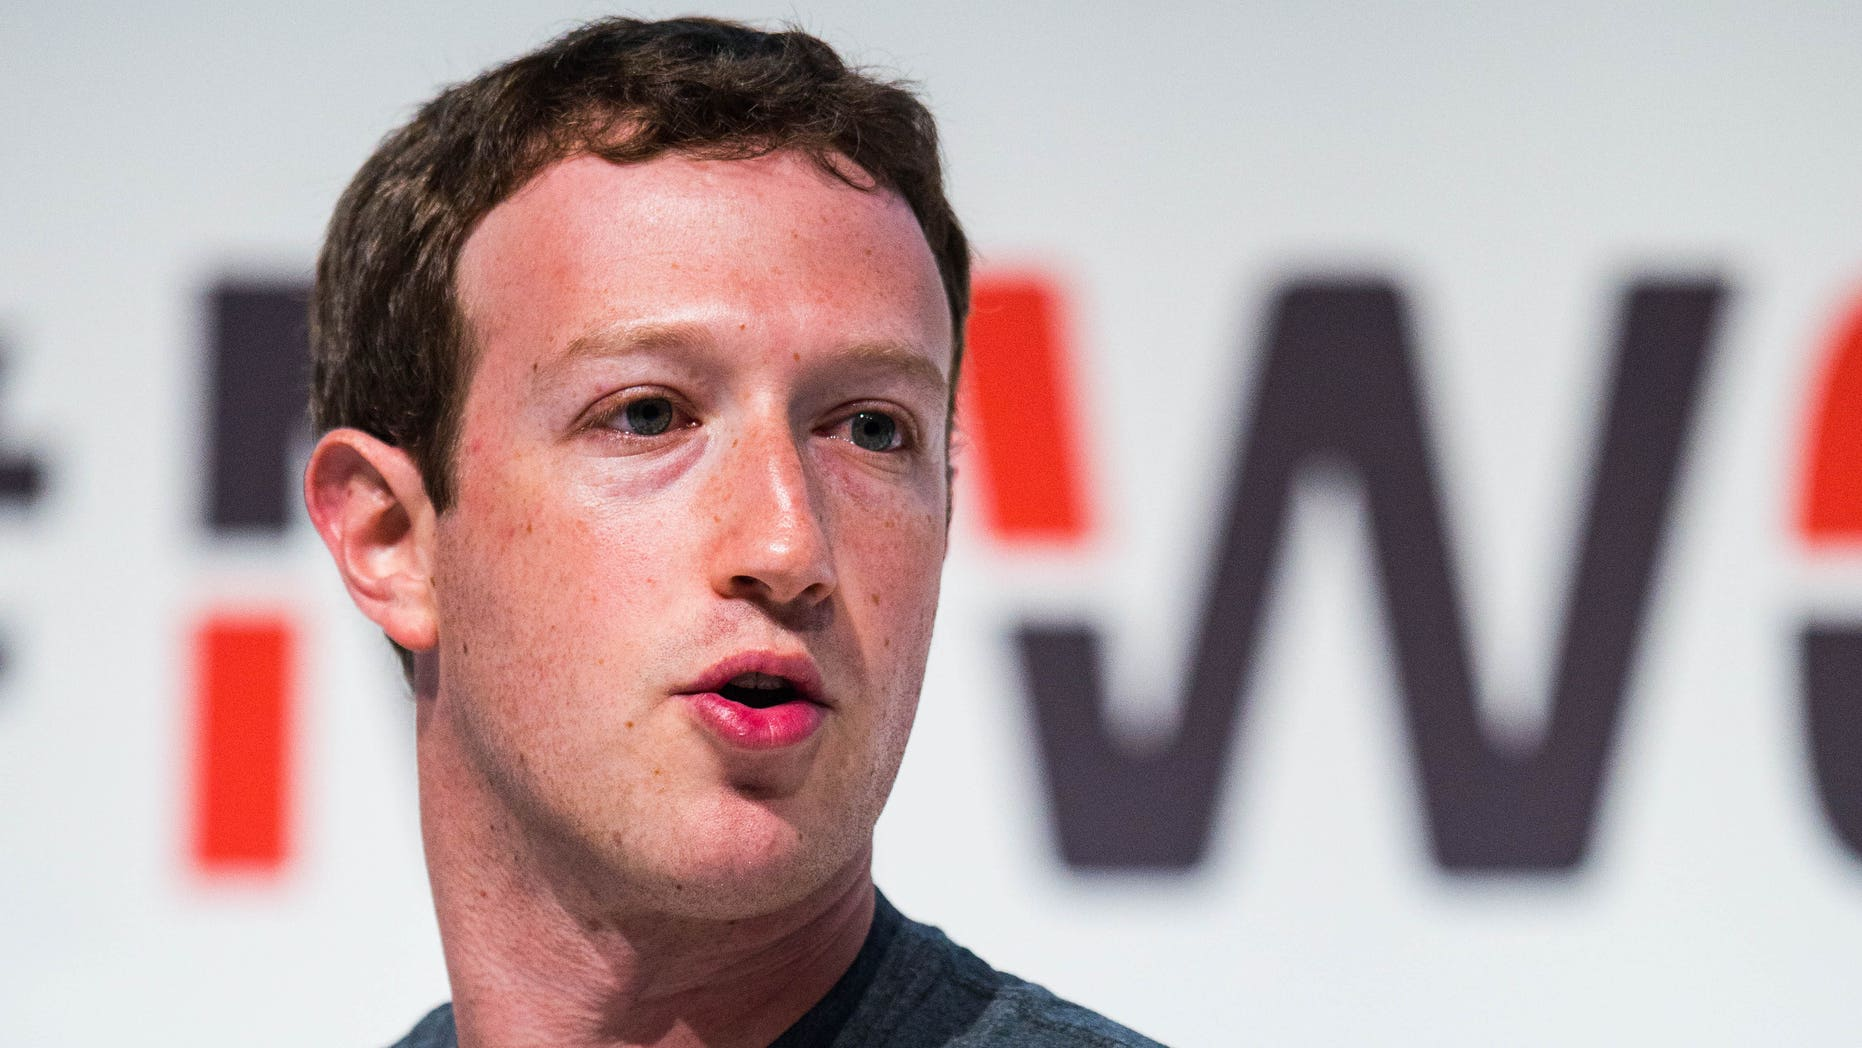 Mark Zuckerberg during the Mobile World Congress 2015 on March 2, 2015 in Barcelona, Spain.